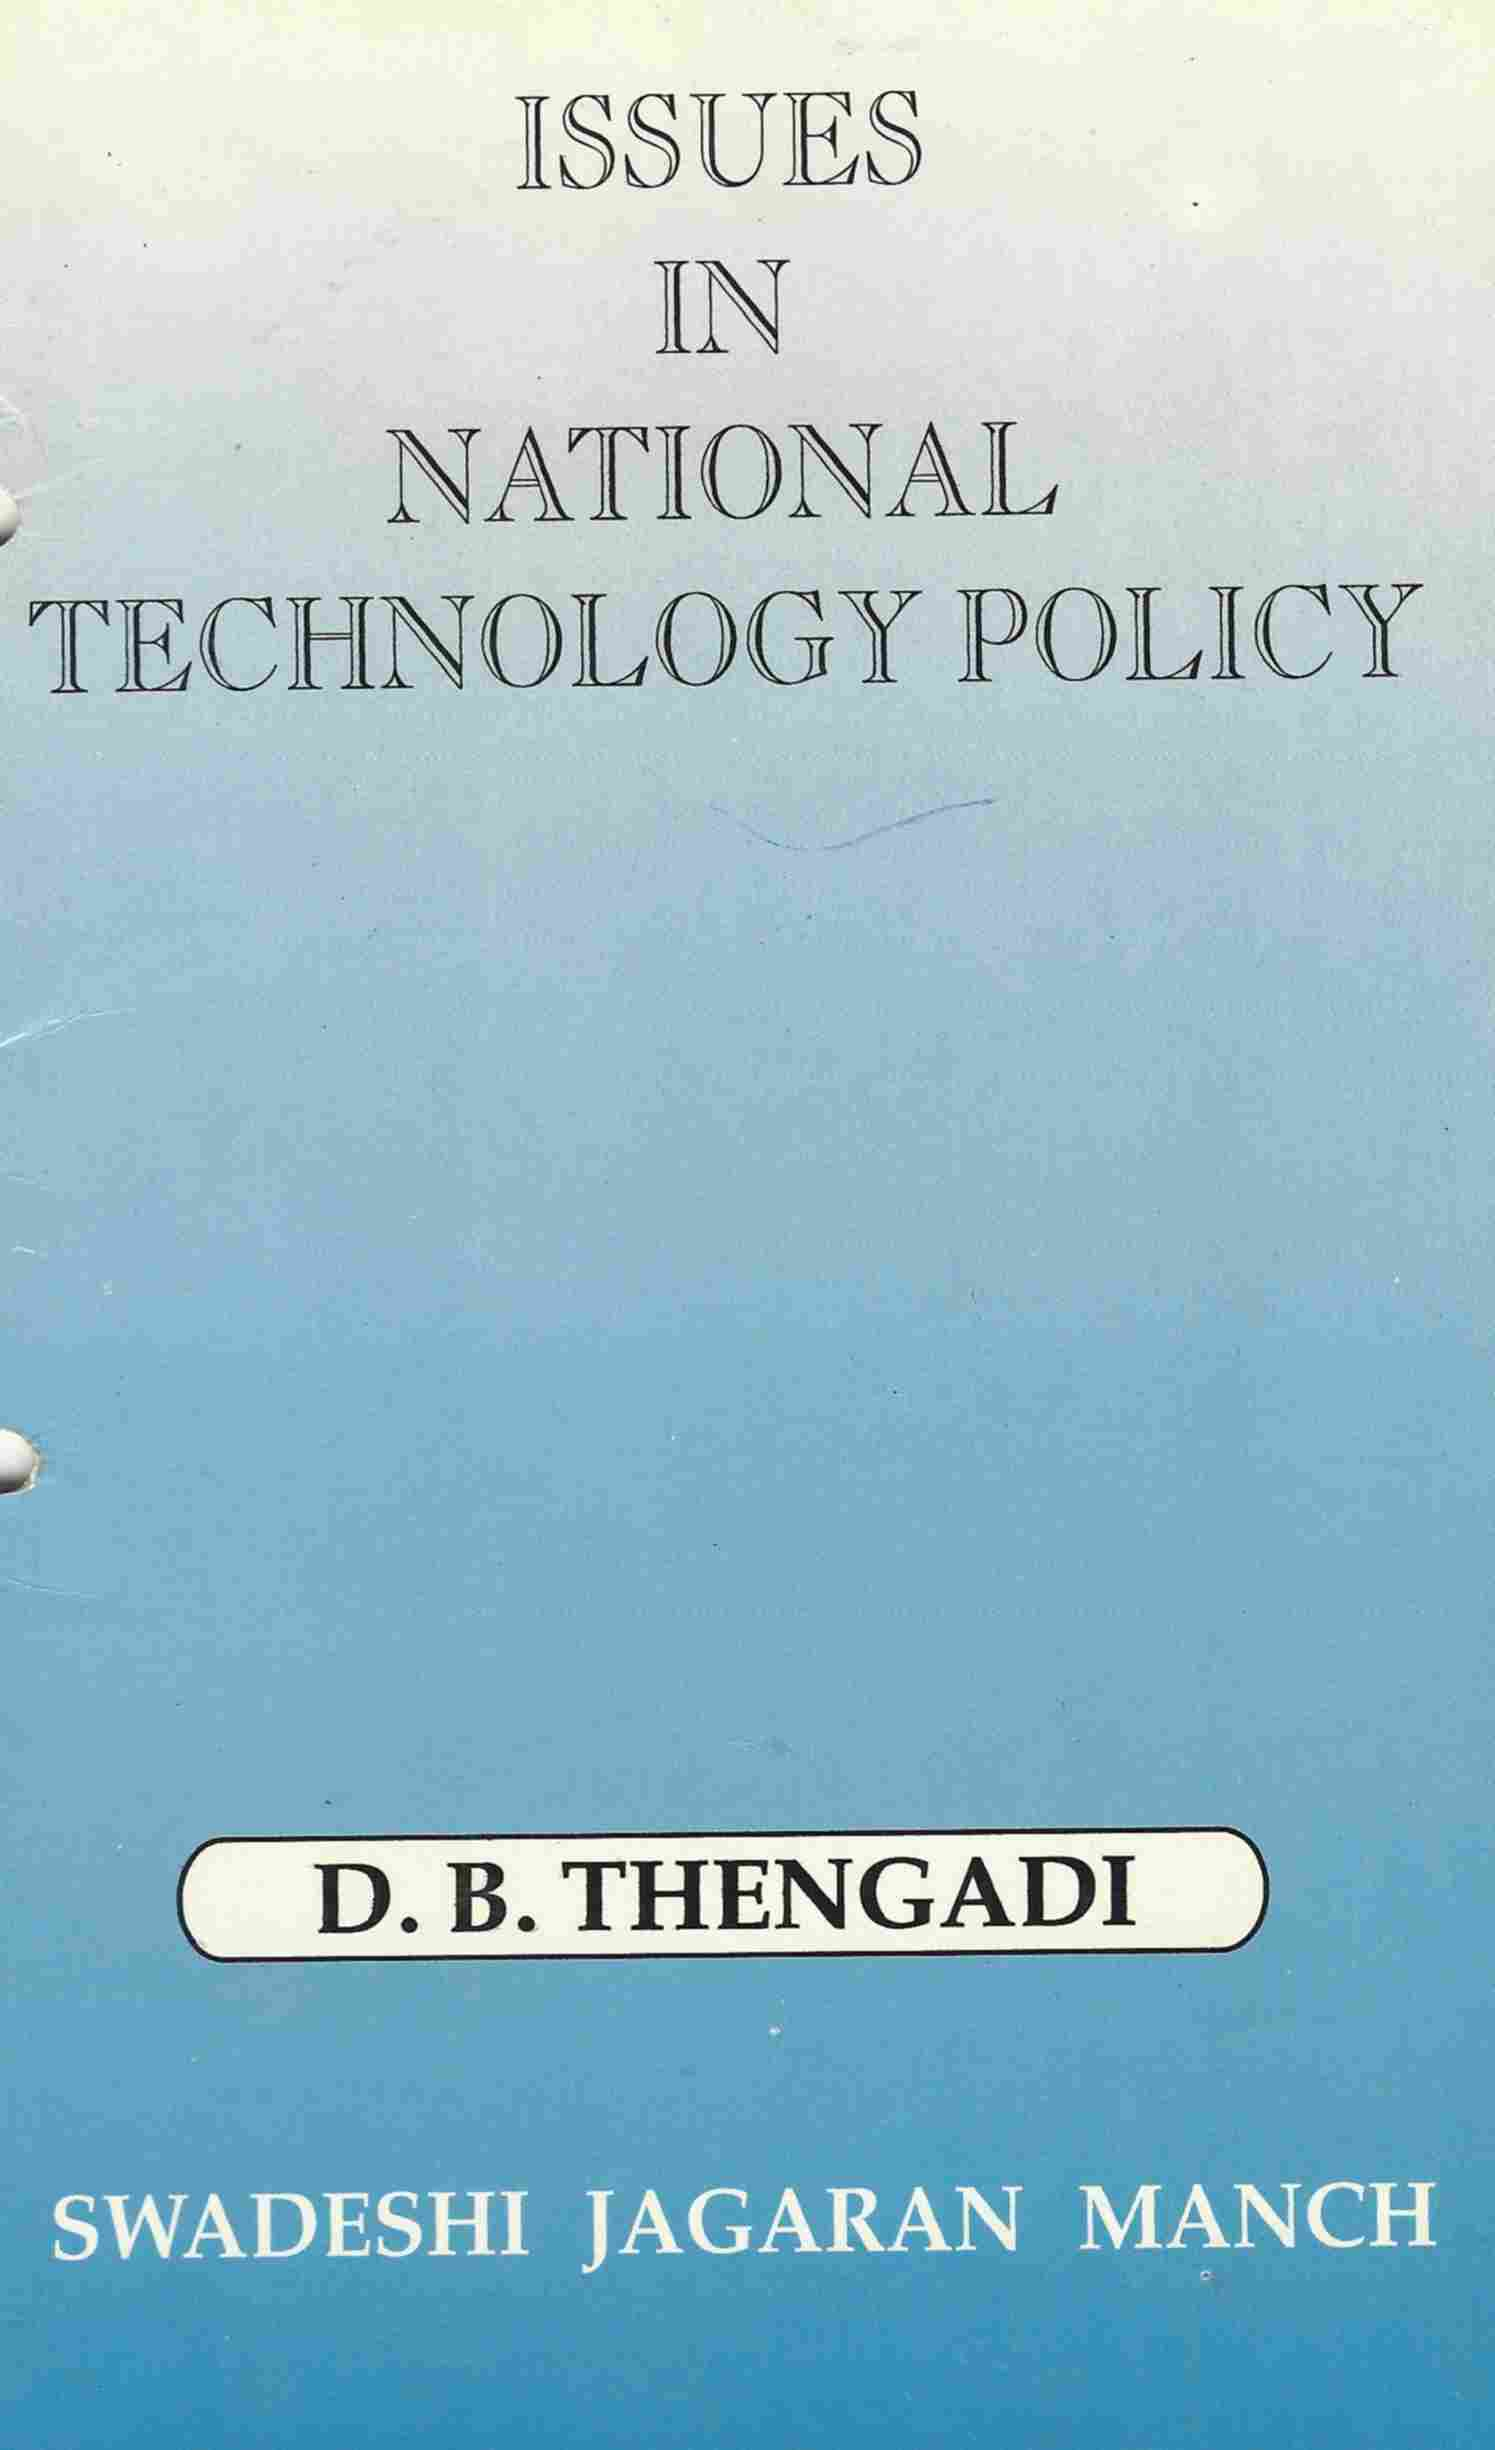 Issues In National Technology Policy